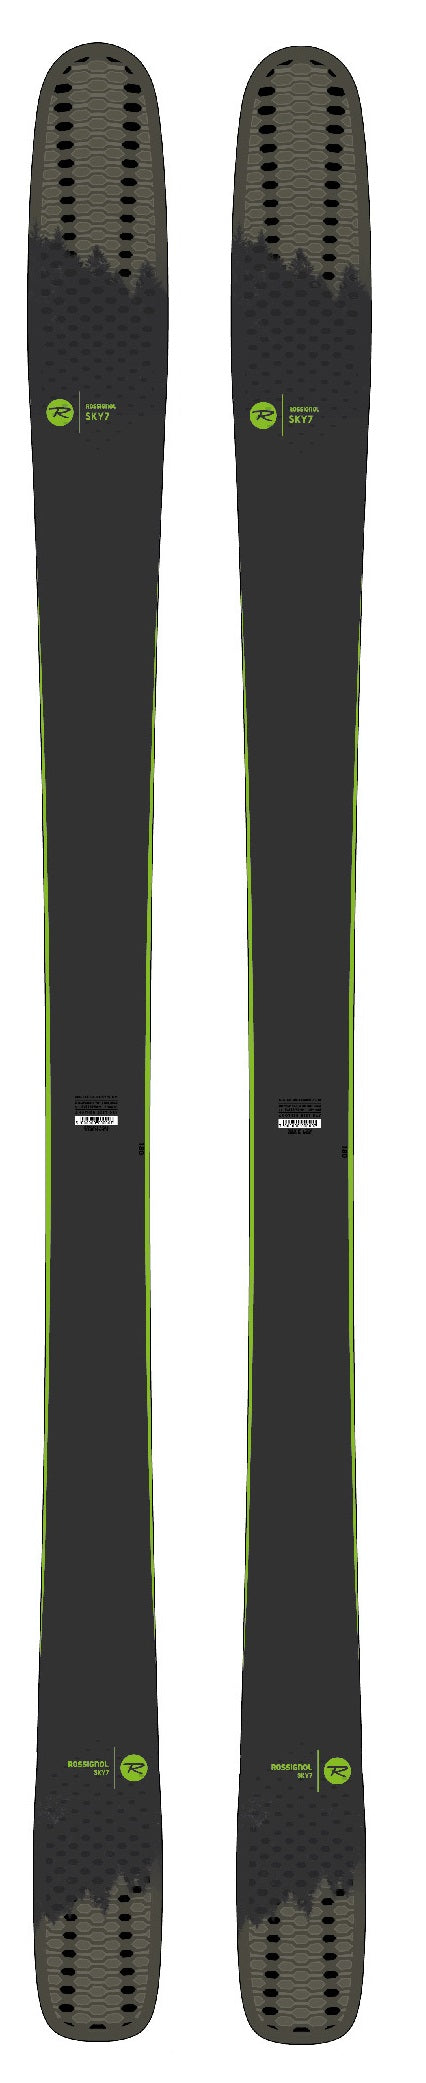 2020 Rossignol Sky 7 HD snow skis - ProSkiGuy your Hometown Ski Shop on the web